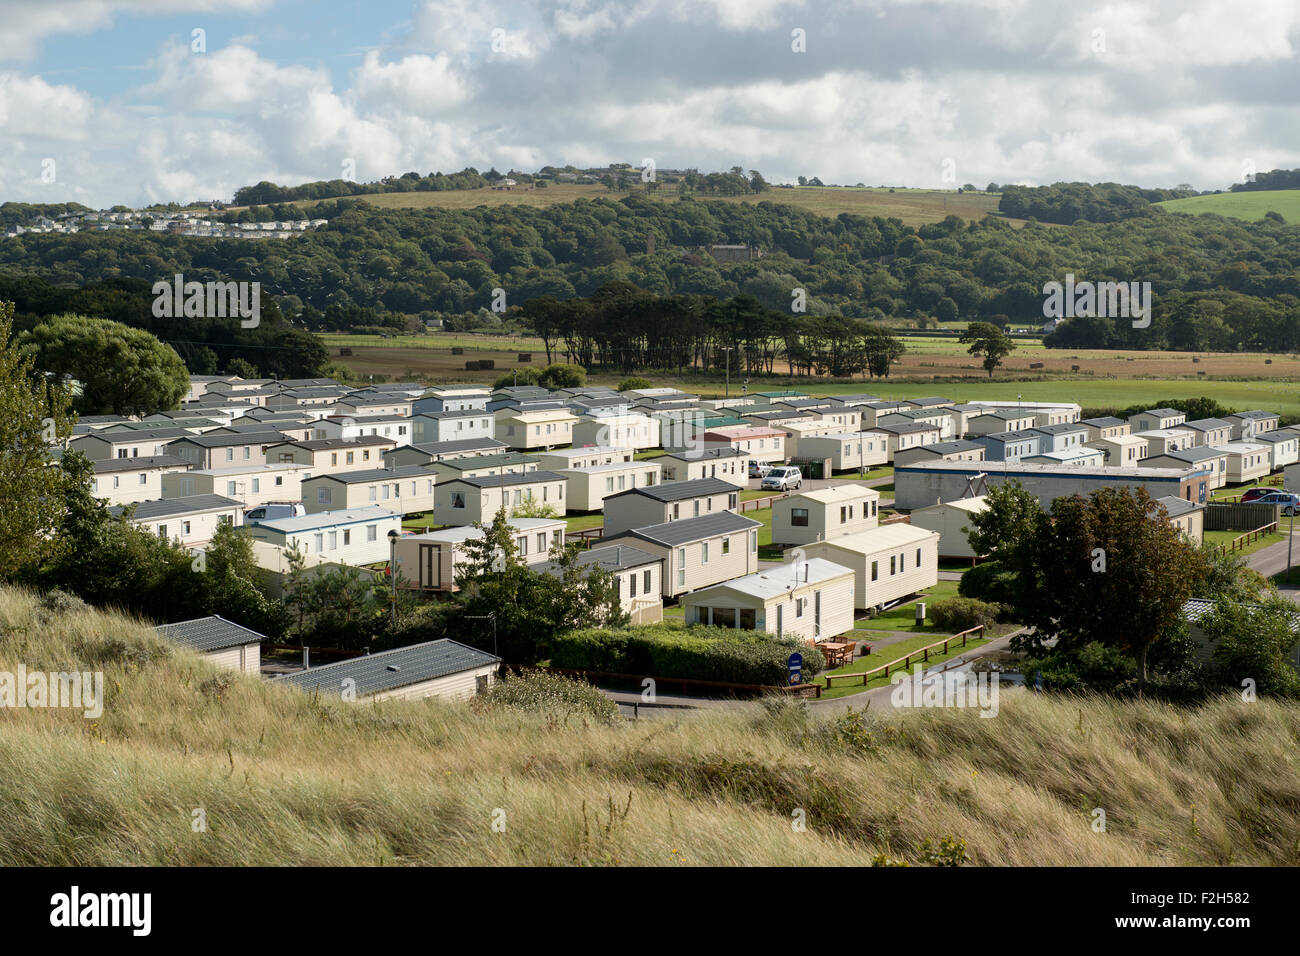 The site of Presthaven Sands caravan park at Gronant in Flintshire, close to Prestatyn in Denbighshire. - Stock Image